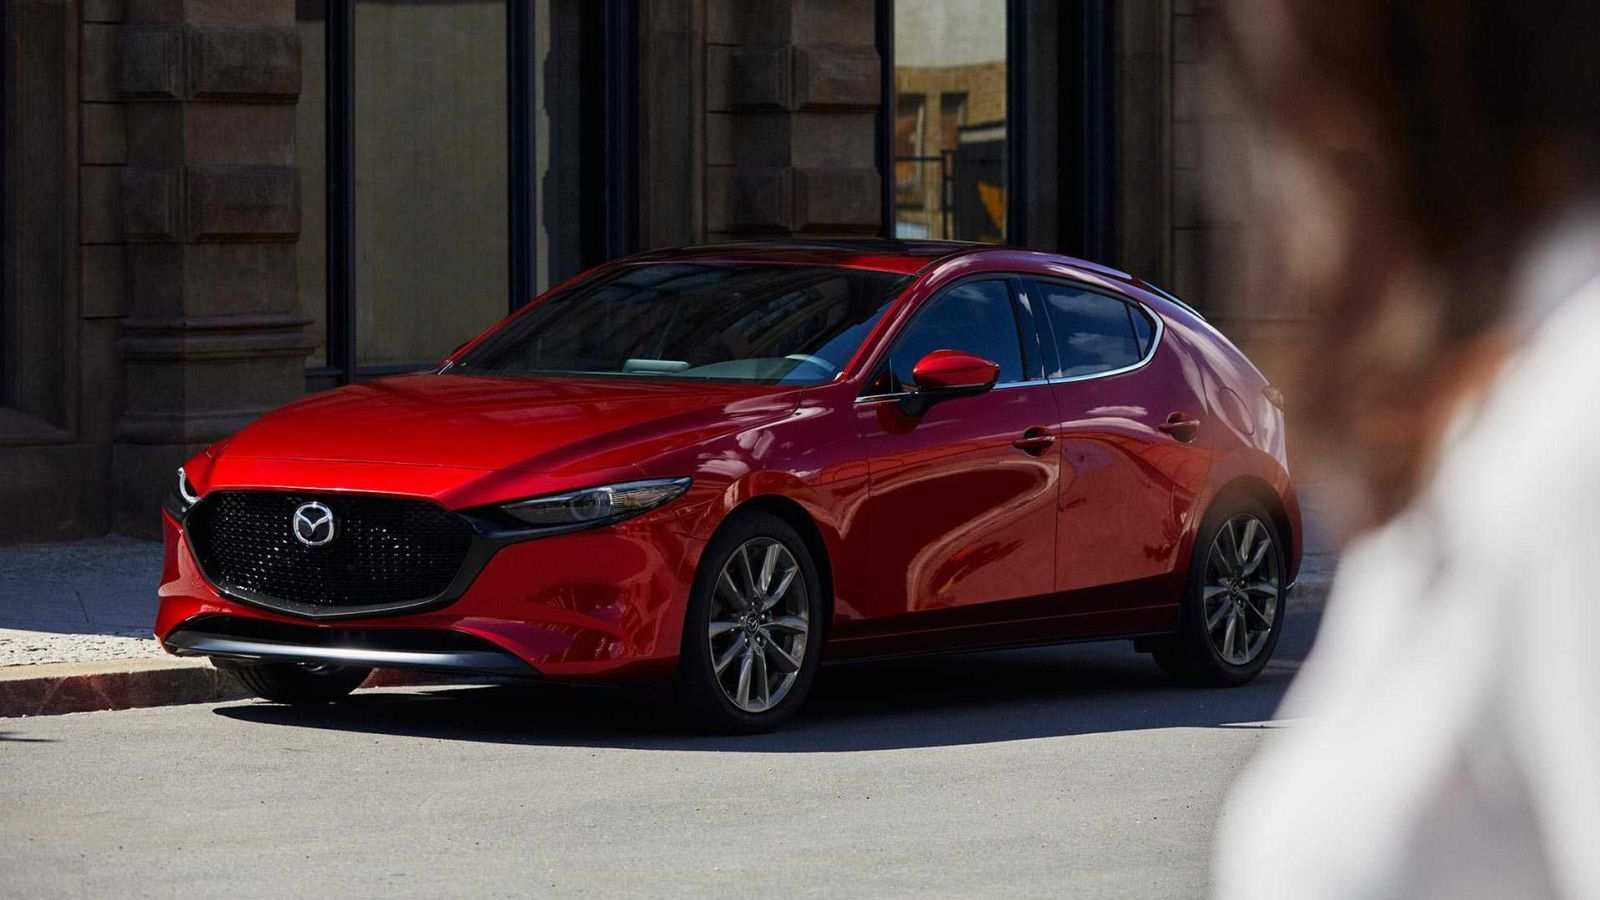 18 All New 2020 Mazda 3 Jalopnik Ratings with 2020 Mazda 3 Jalopnik